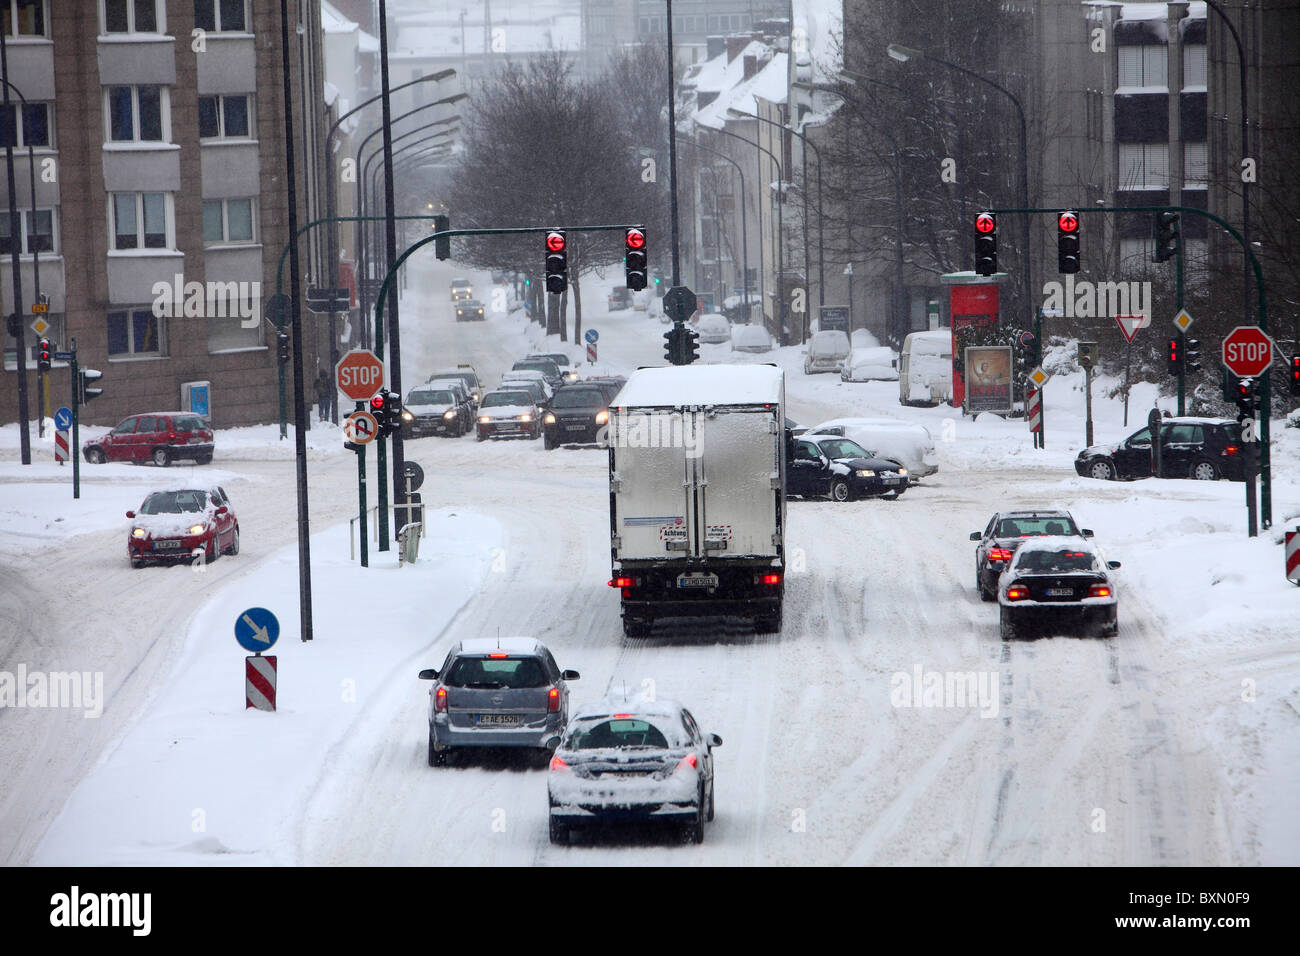 Wintertime, traffic in a city center, snow covered streets. - Stock Image